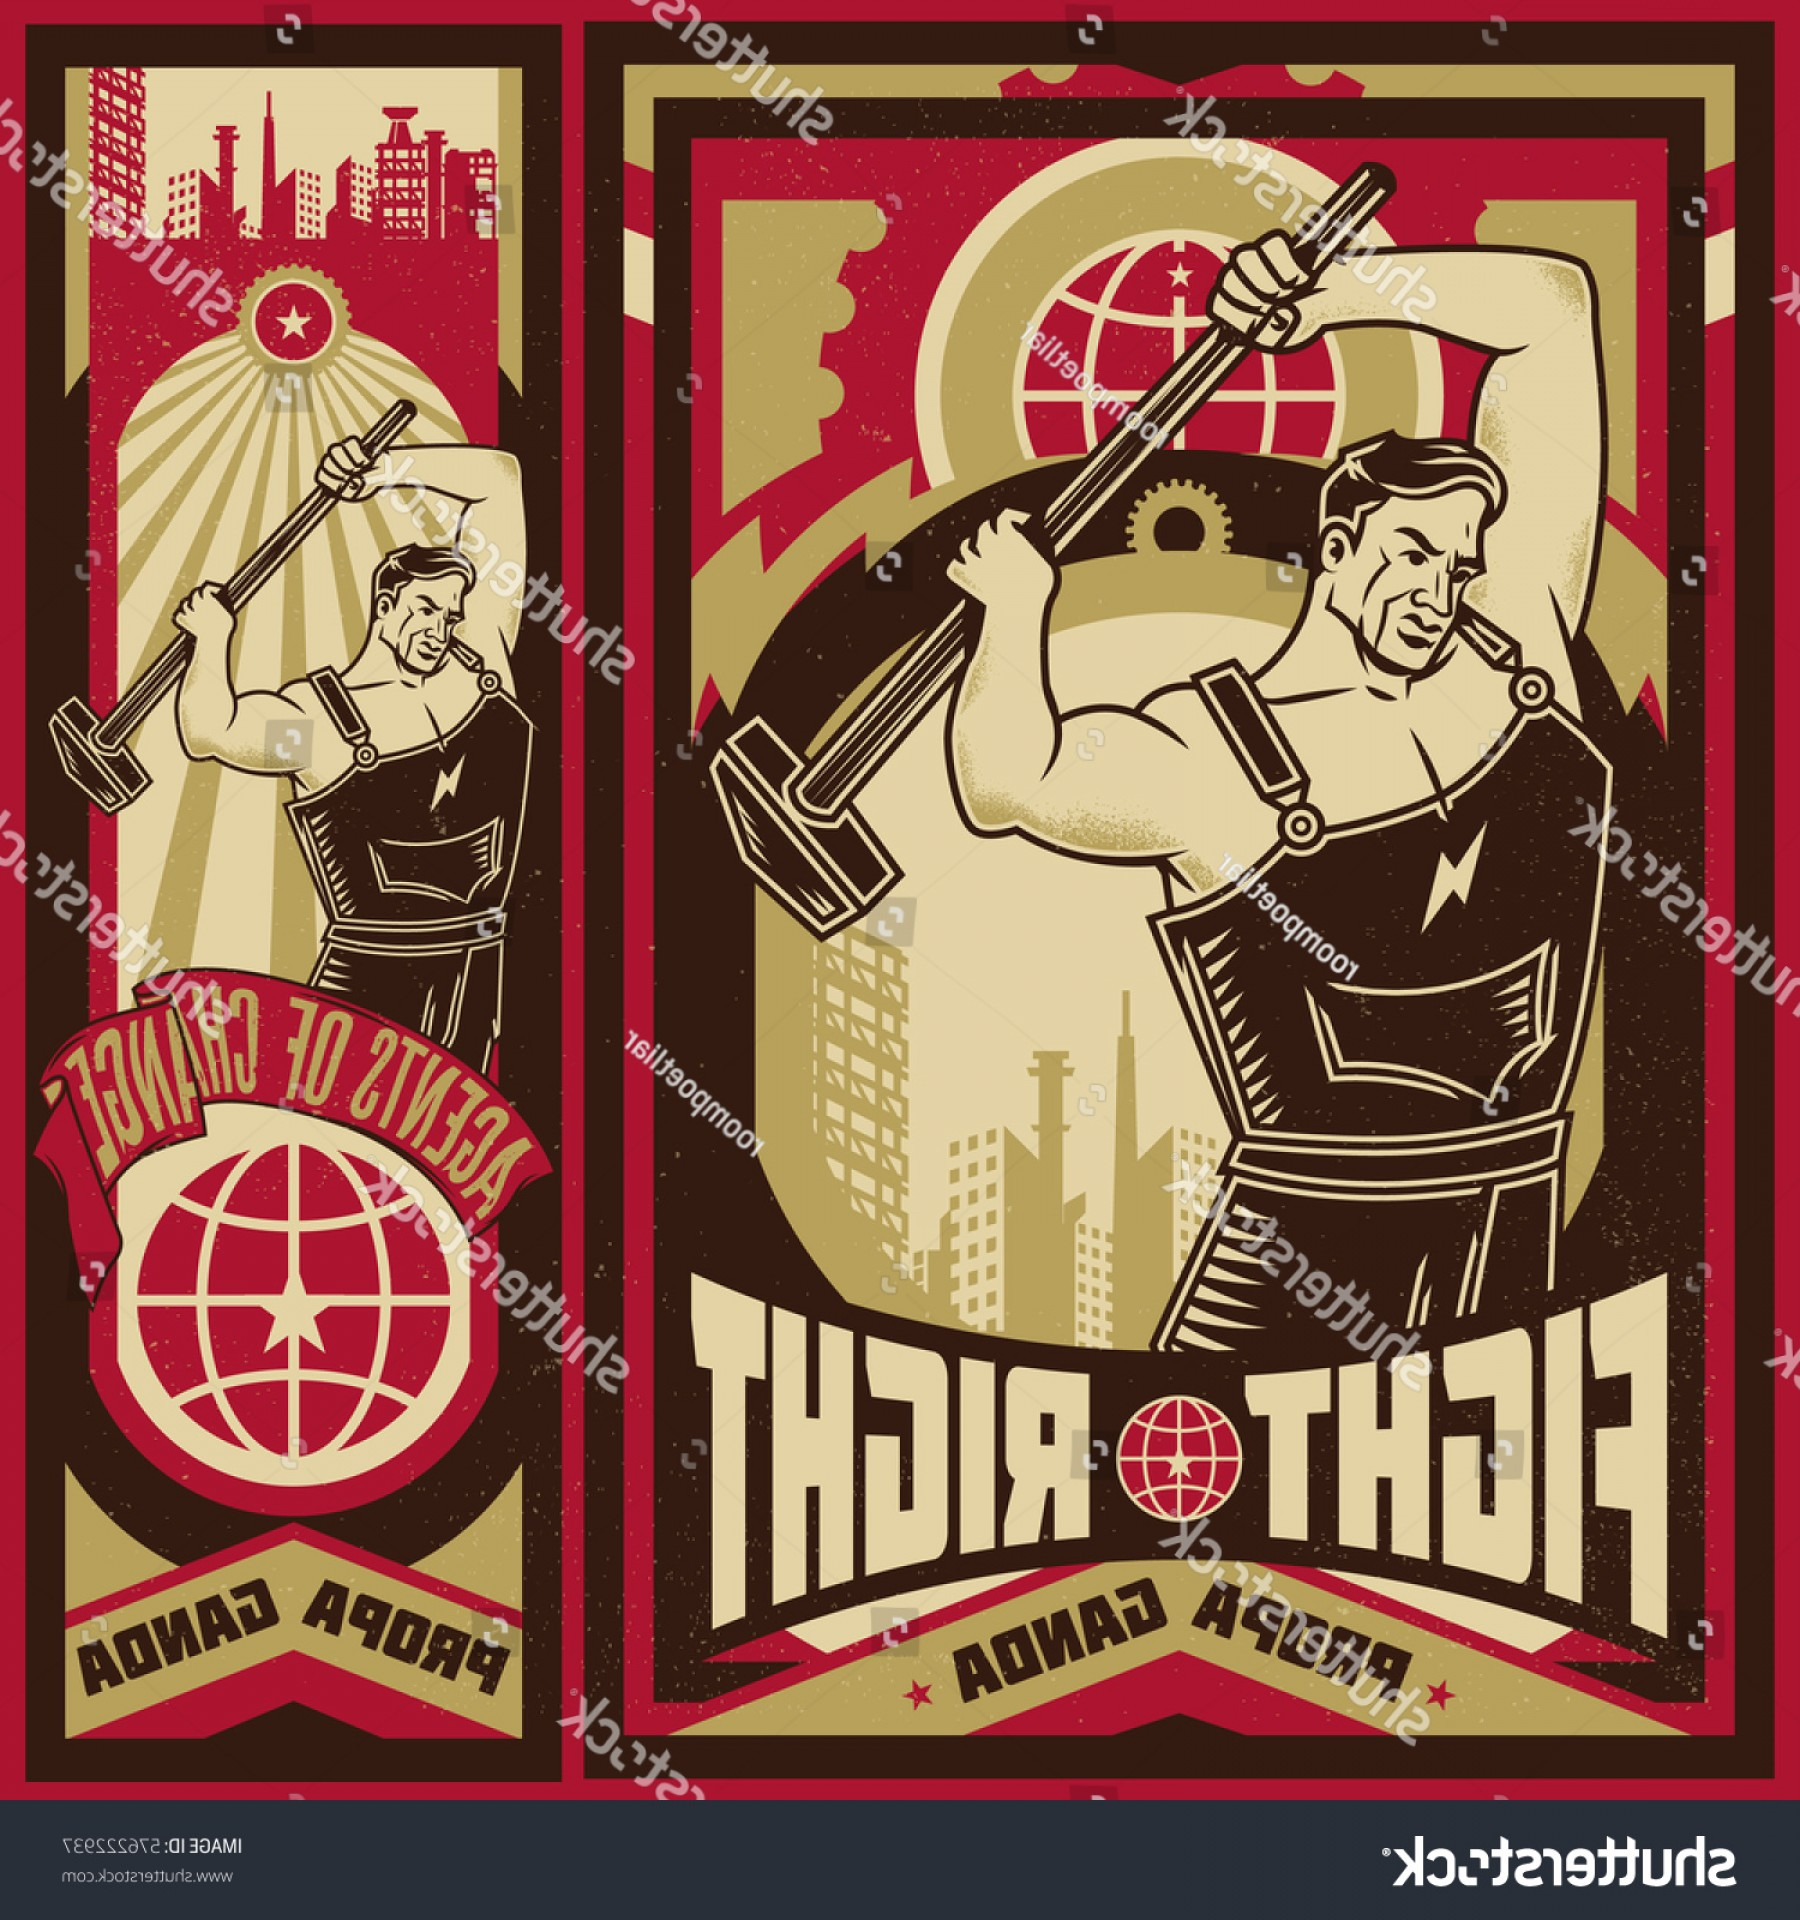 Propaganda Art Poster Vector: Vintage Propaganda Poster Elements Isolated Artwork